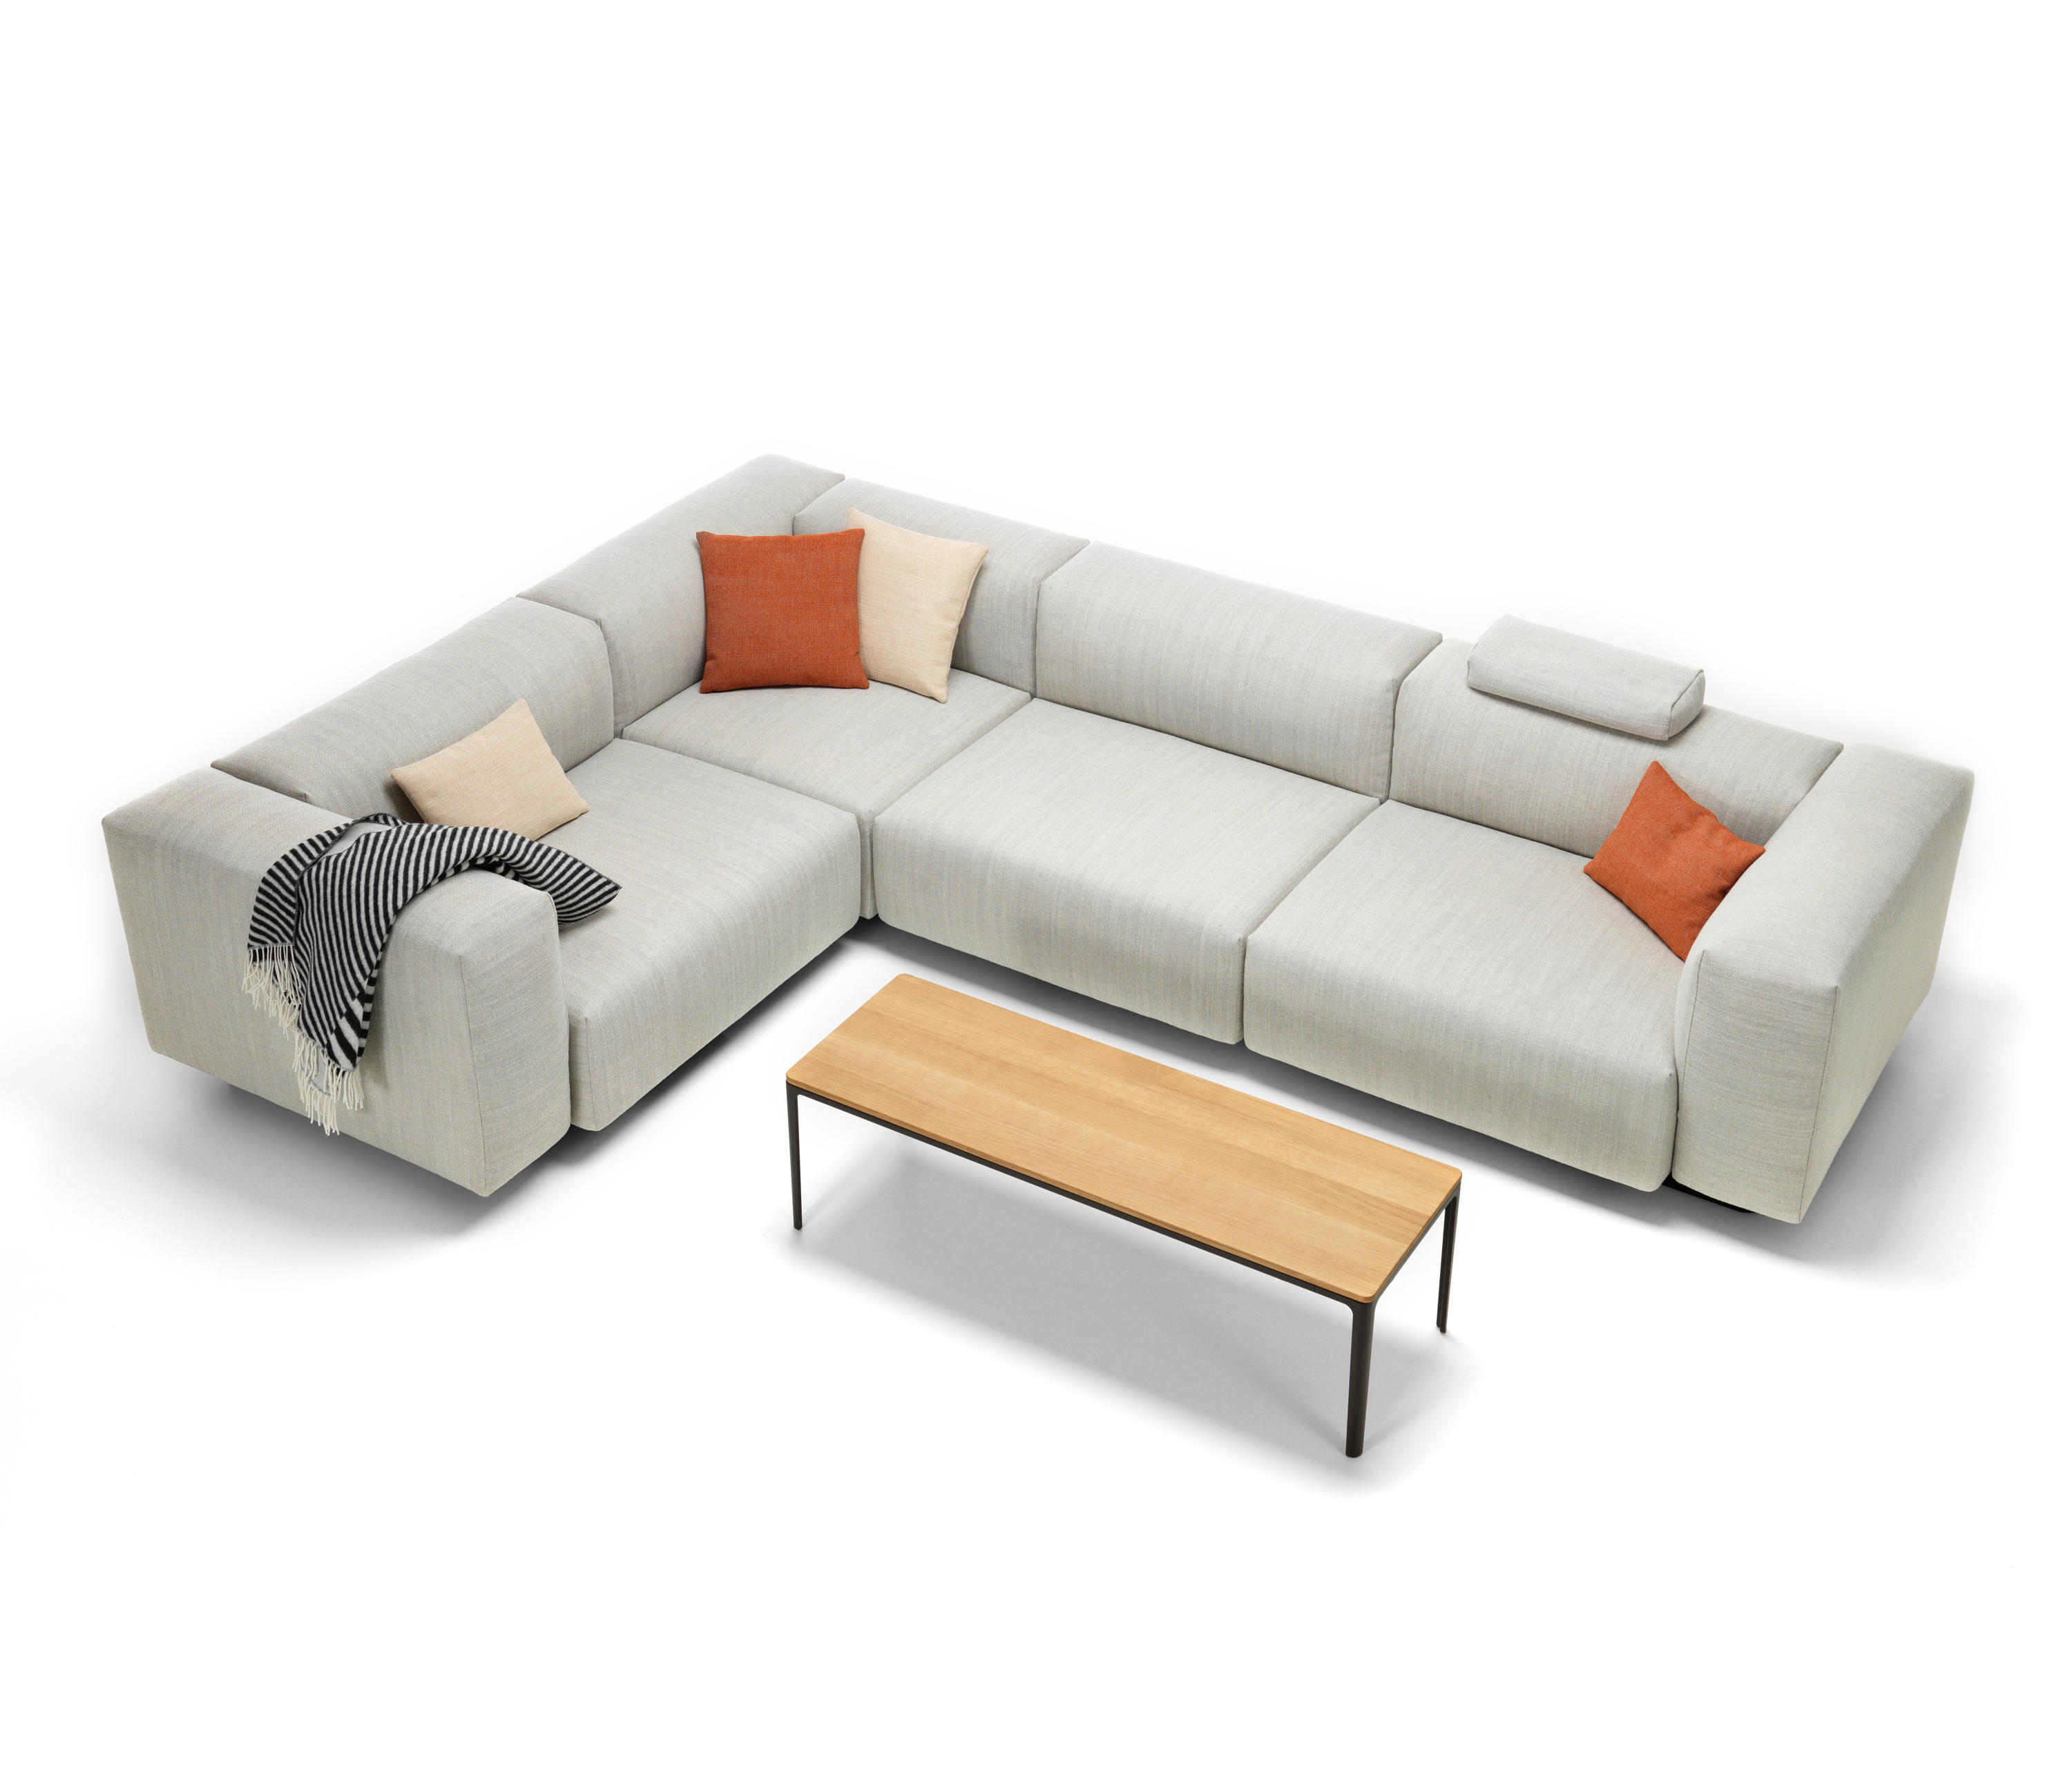 sears sofa cleaning coupon metro bed fantastic furniture rug doctor mattress